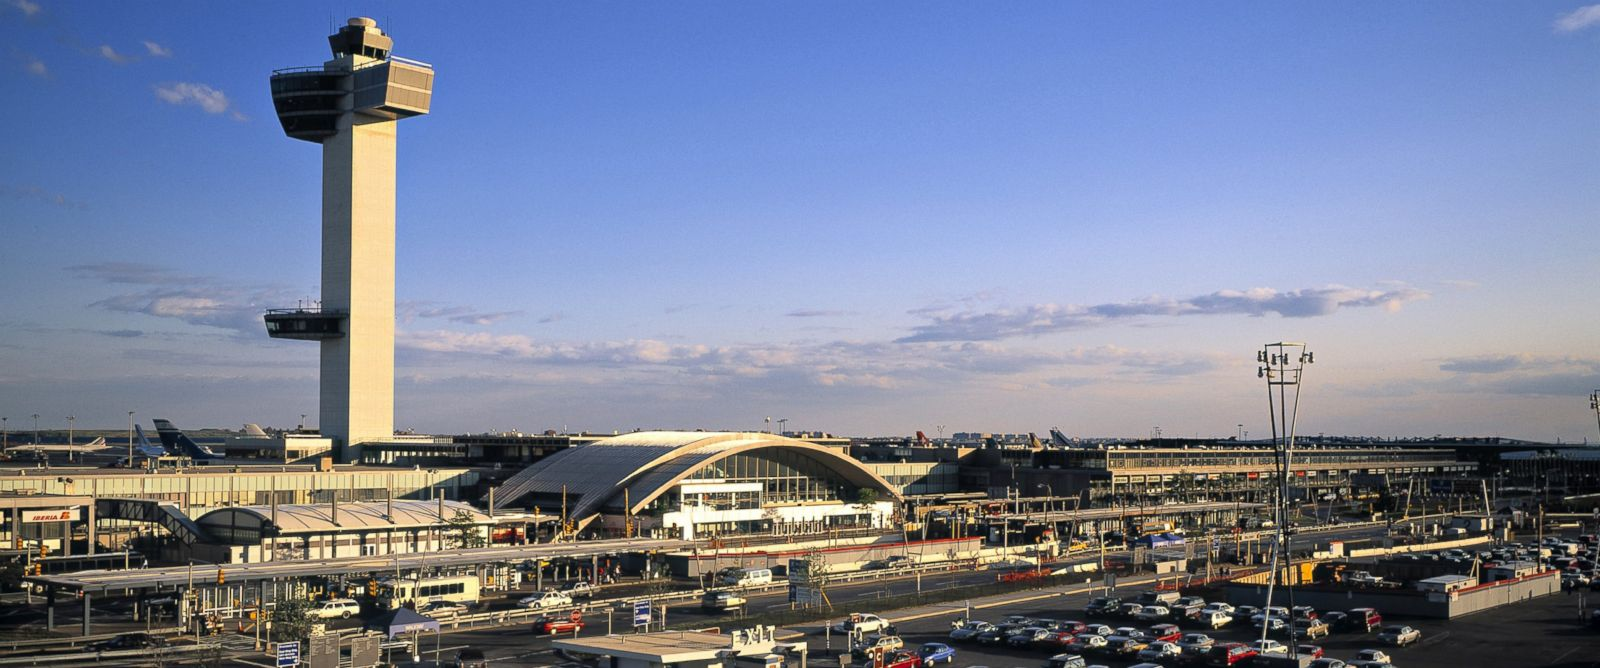 PHOTO: JFK International Airport in New York City.